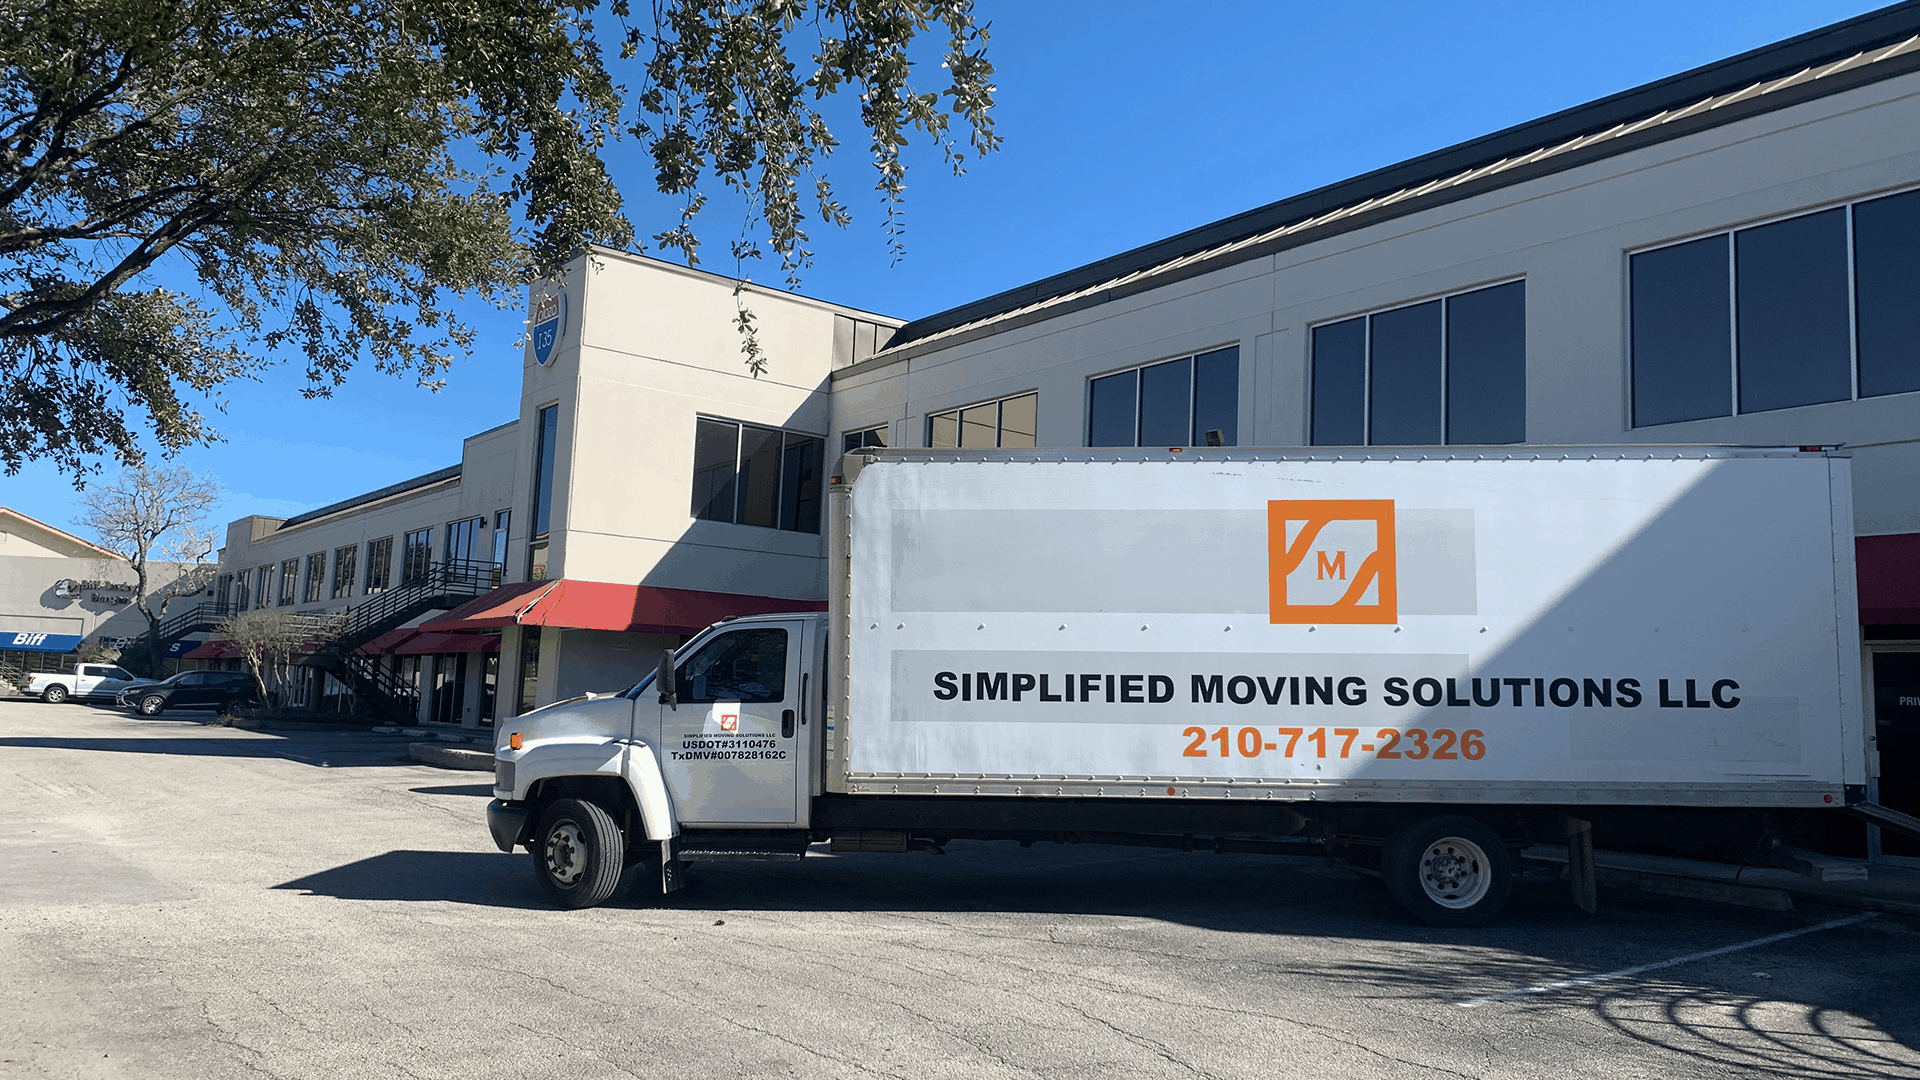 Image of large moving truck parked at commercial business